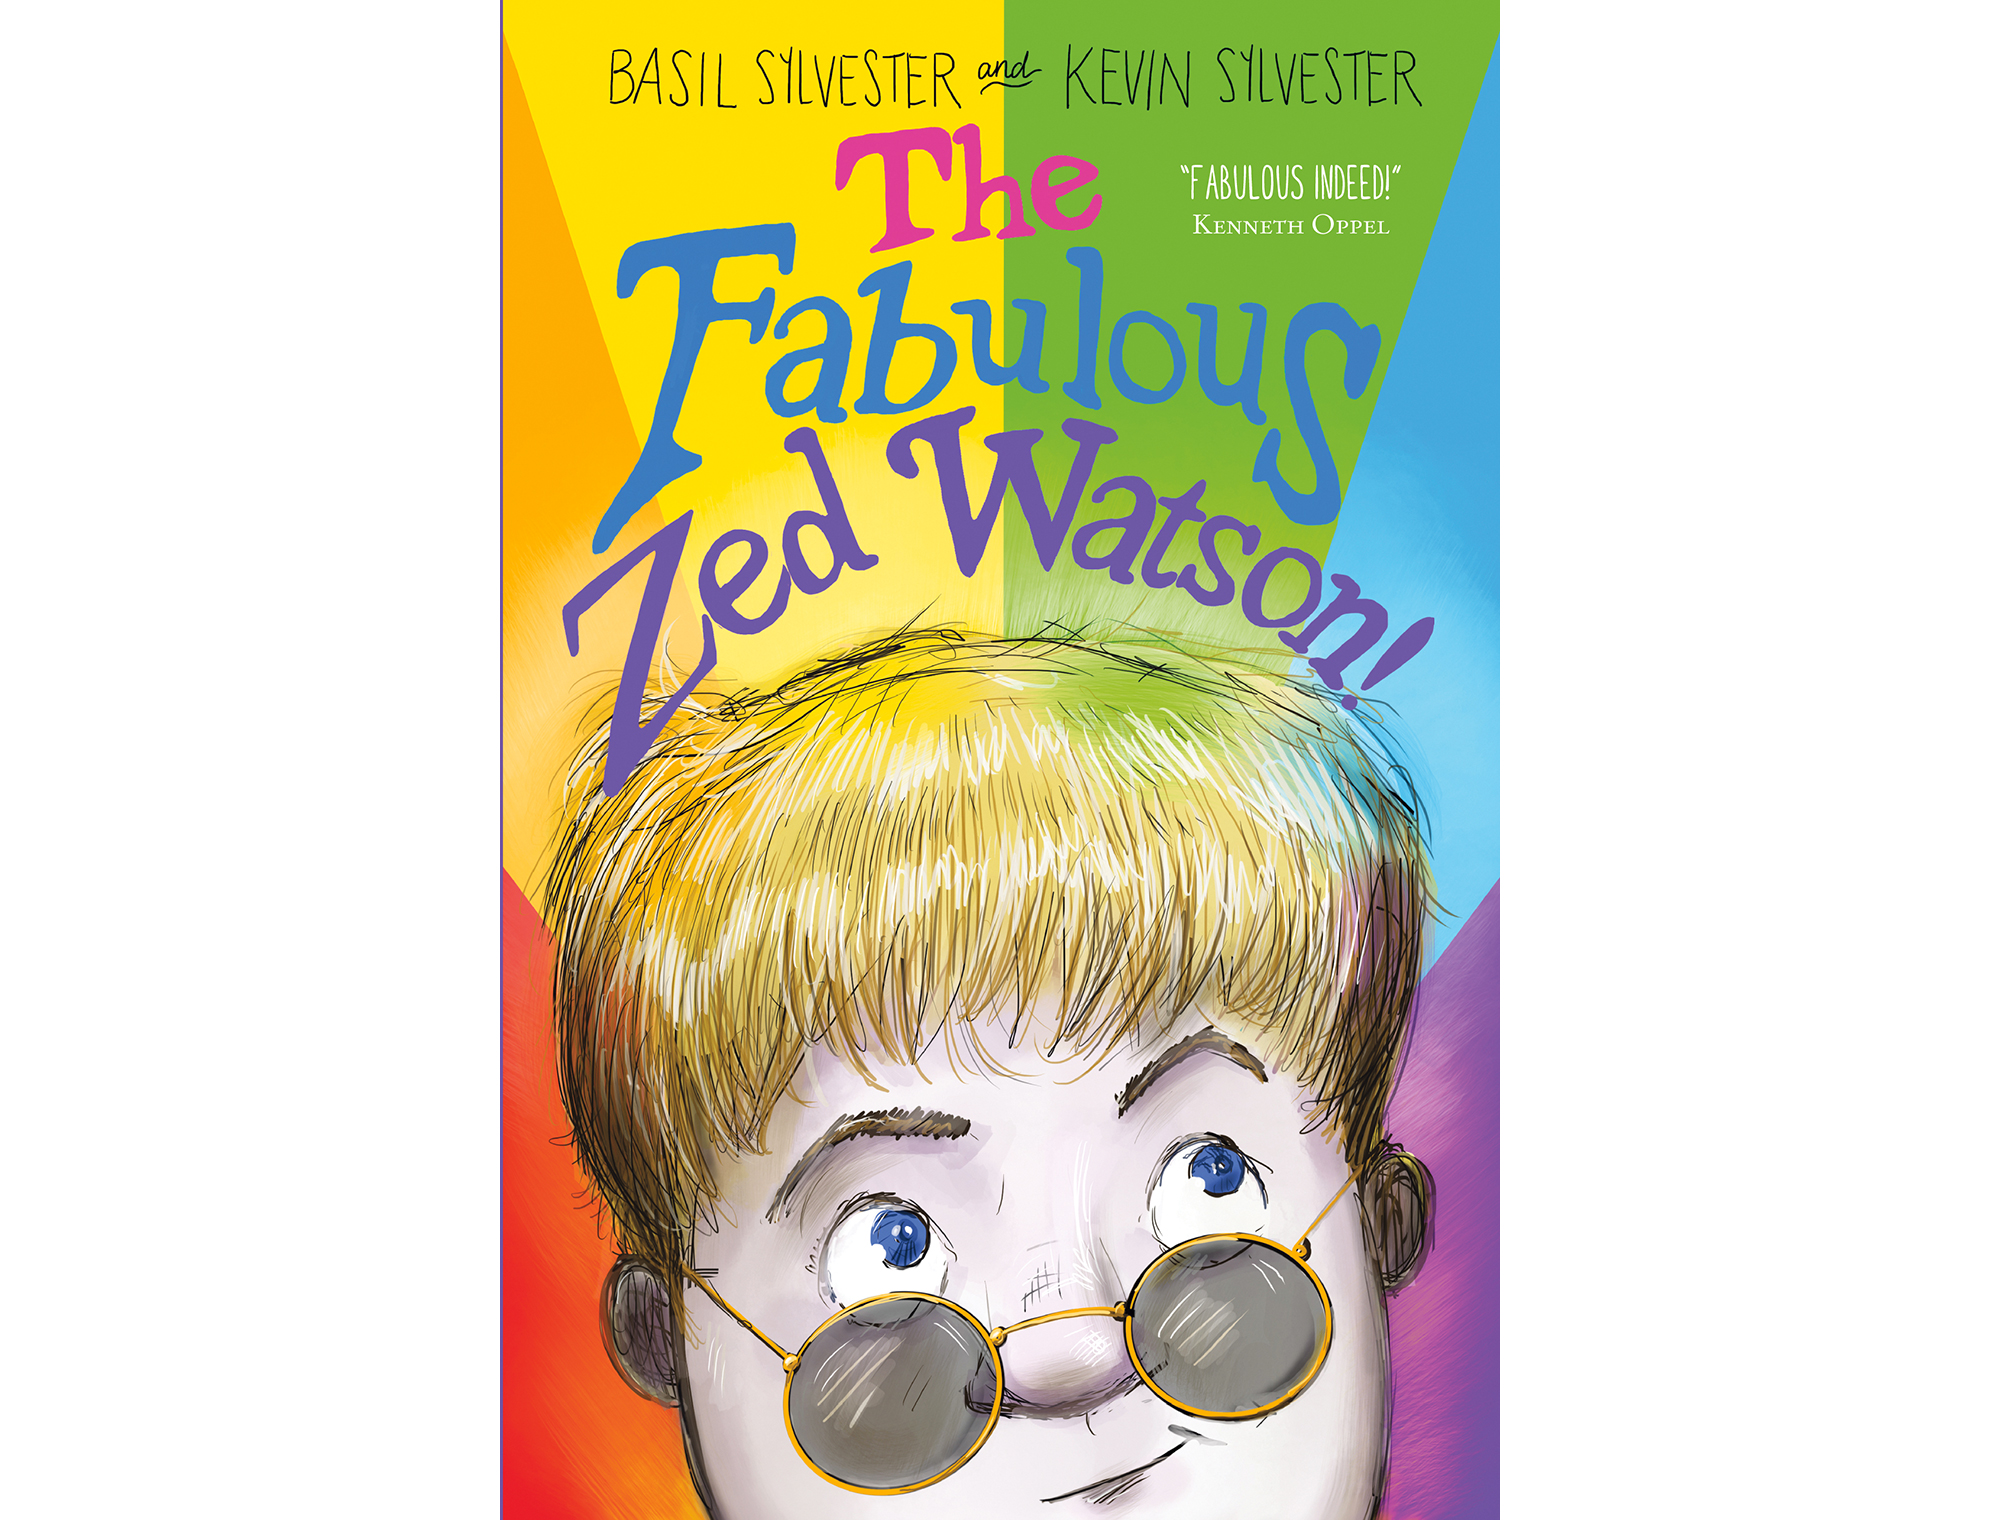 The cover of The Fabulous Zed Watson